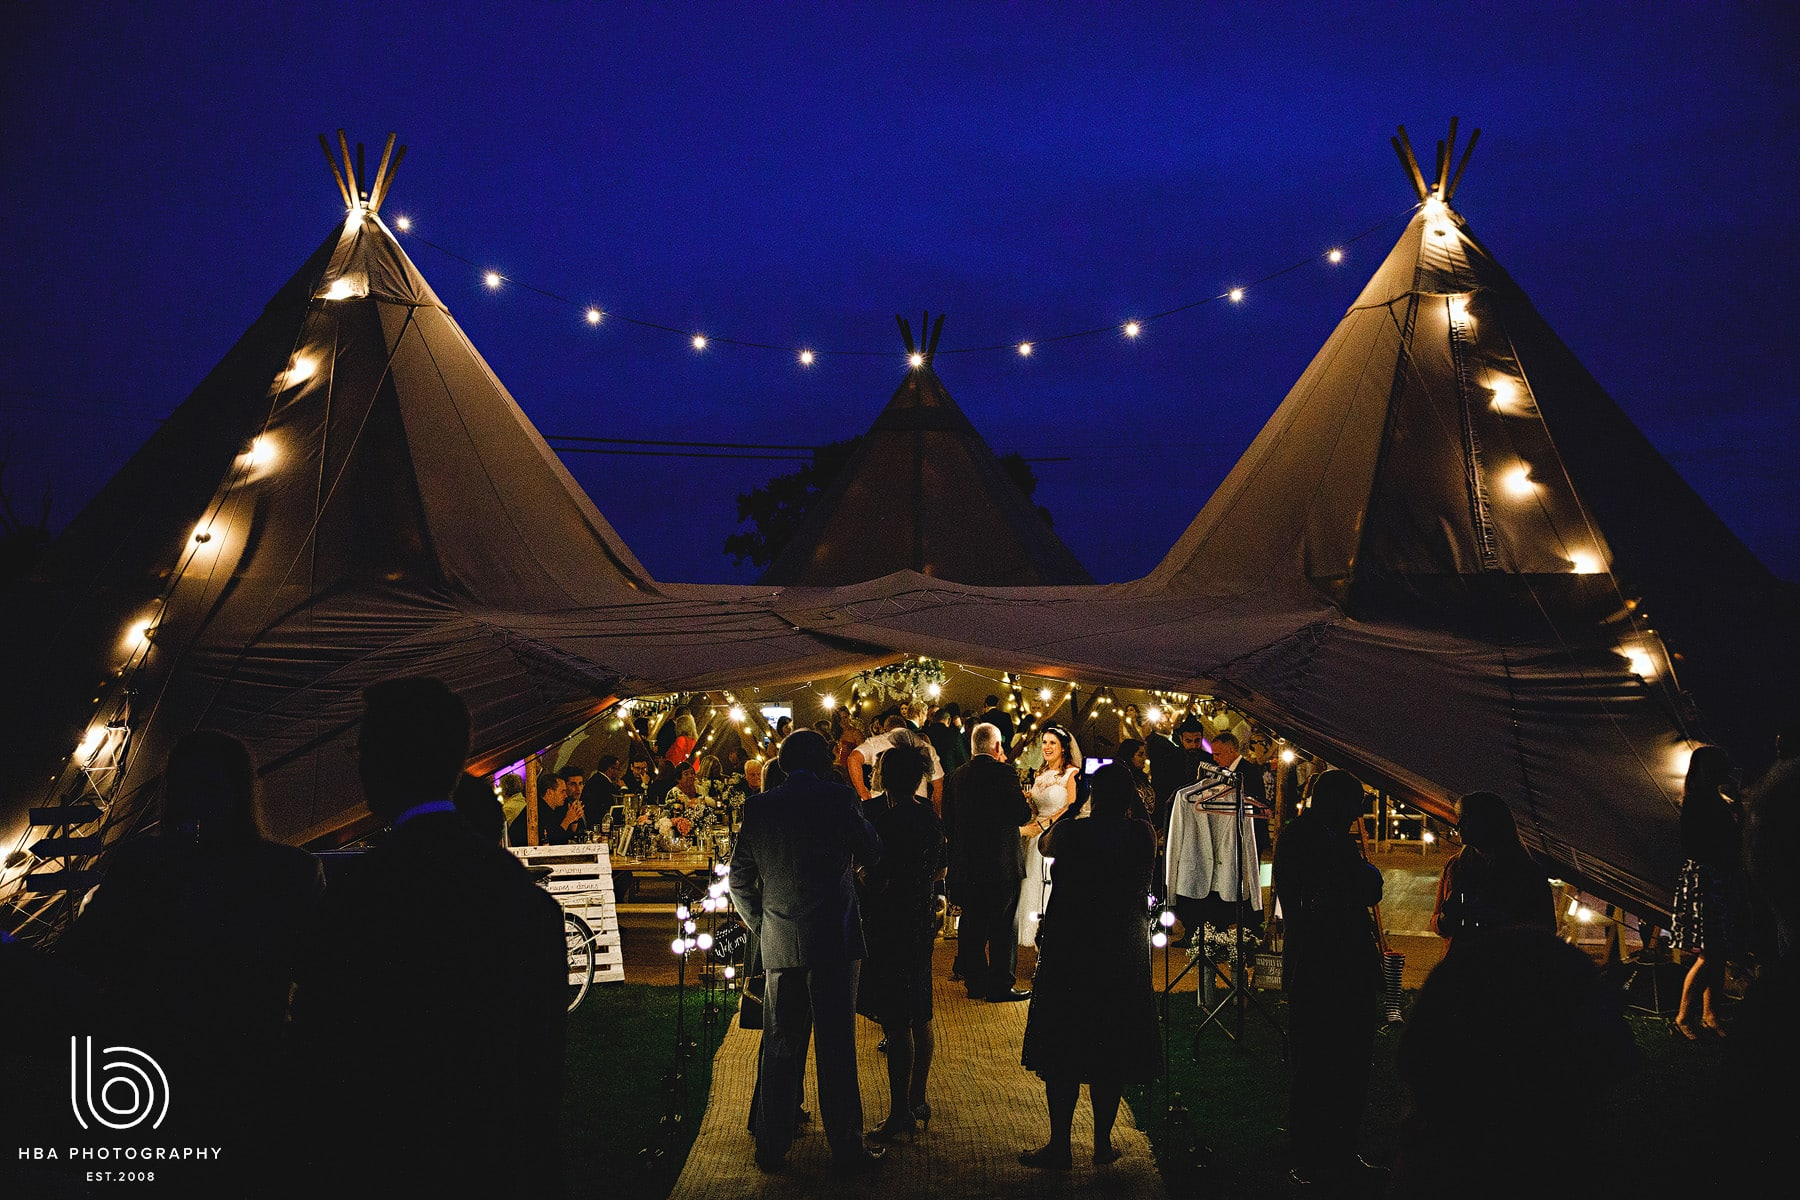 the beautiful tipi at night